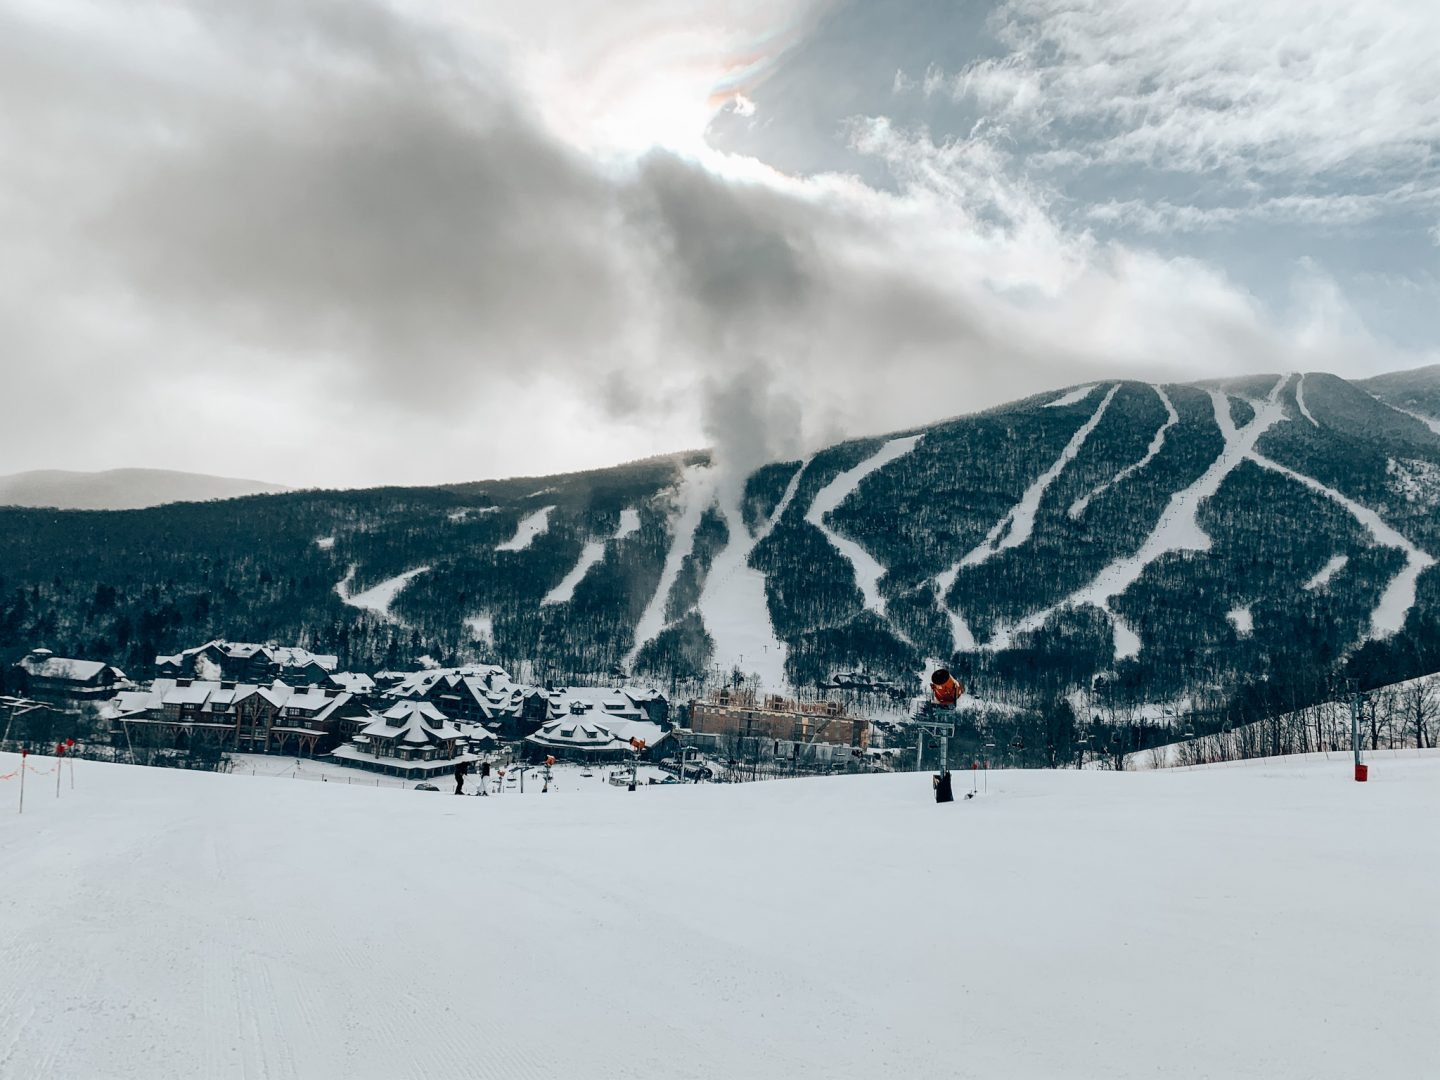 View of the slopes at one of the best ski resorts in New England